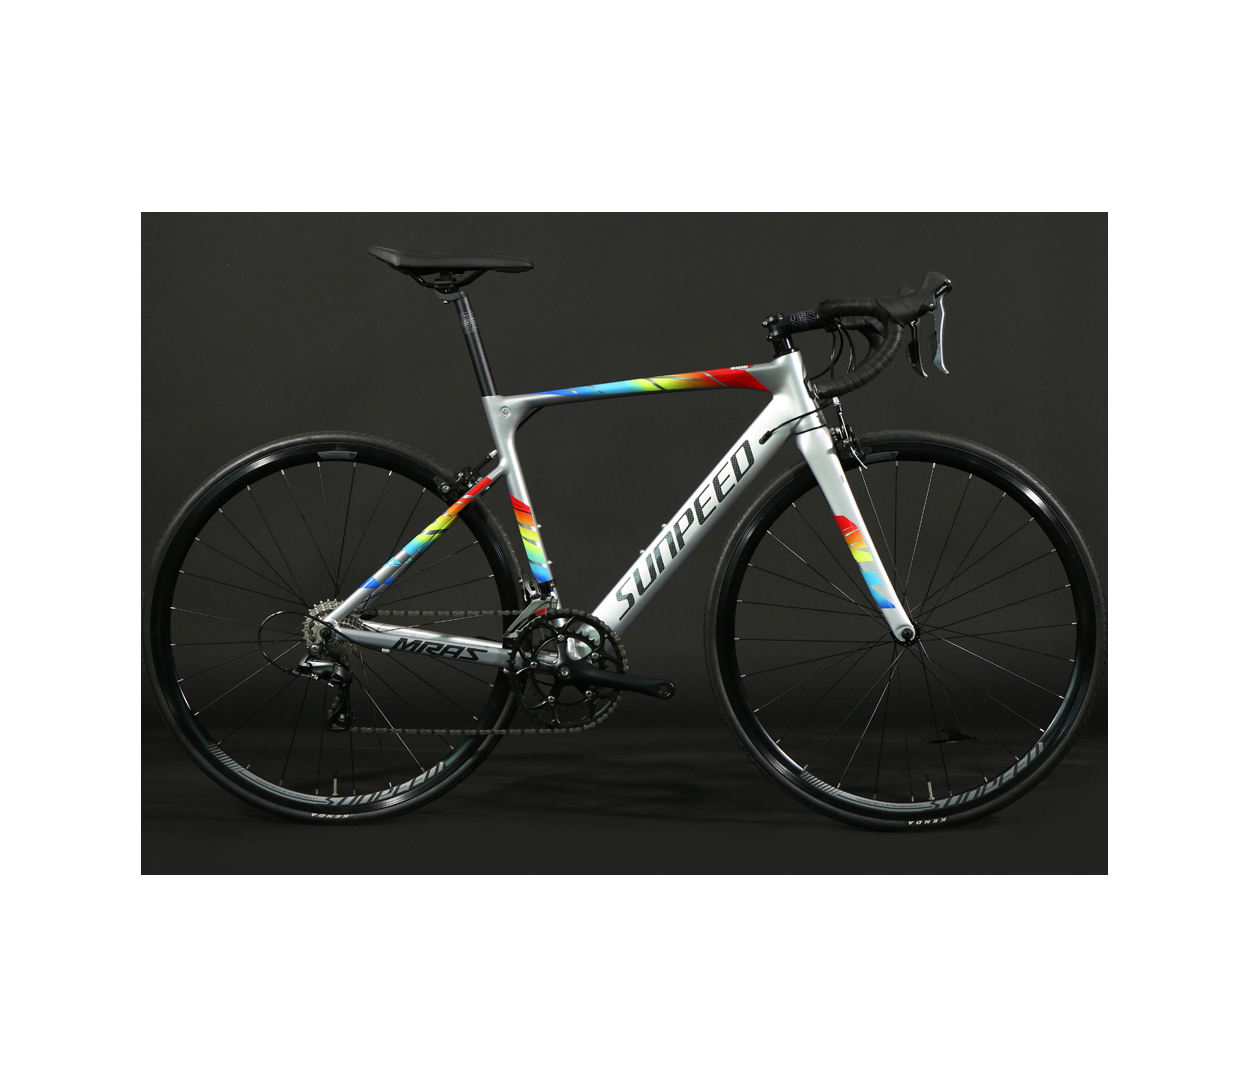 SUNPEED MARS leight weight fast 쿨 Carbon 자전거 carbon Road Bike